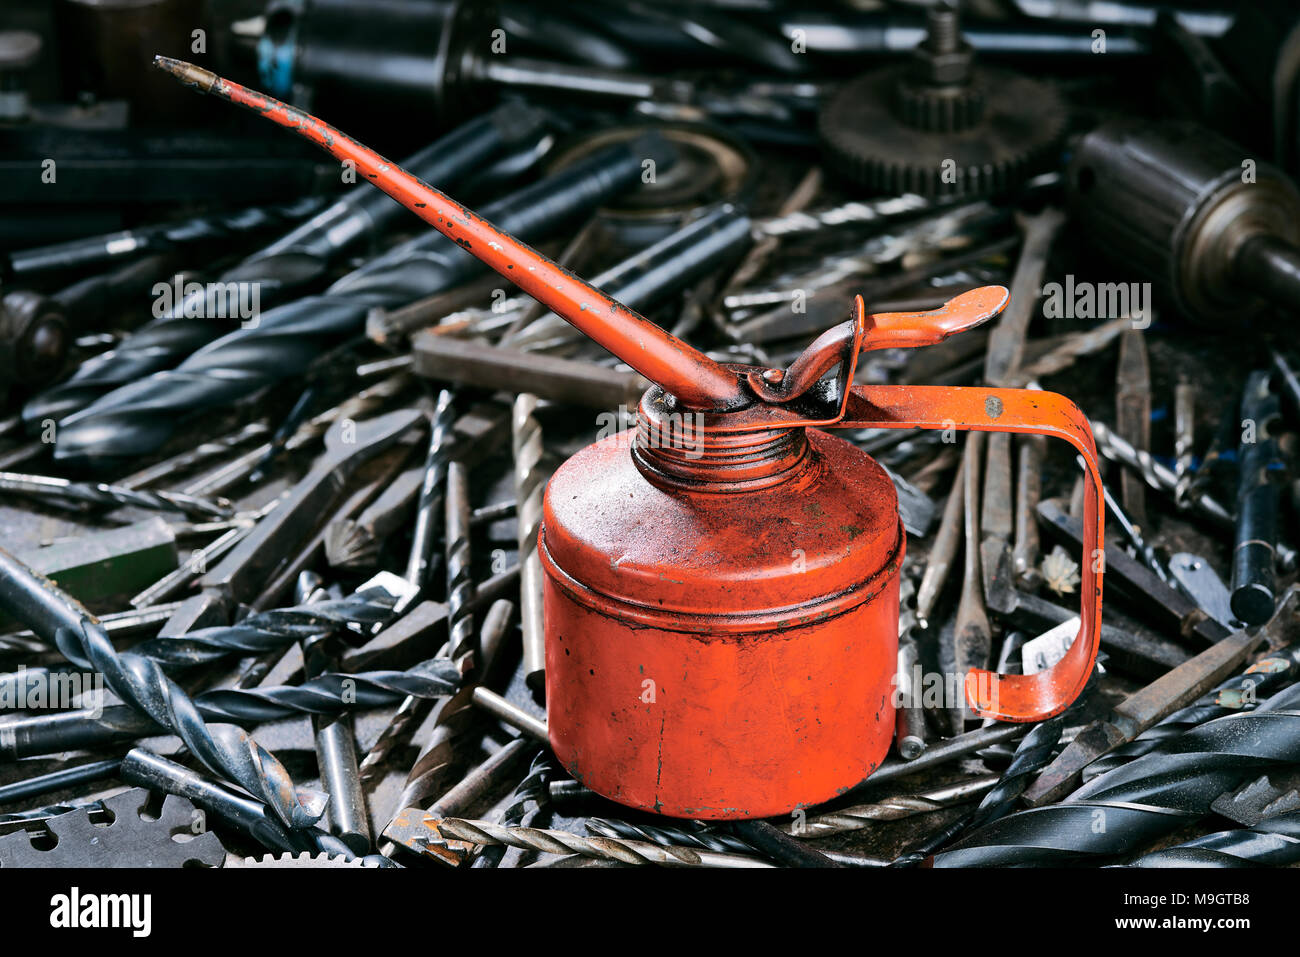 Orange oil can on drill bits - Stock Image